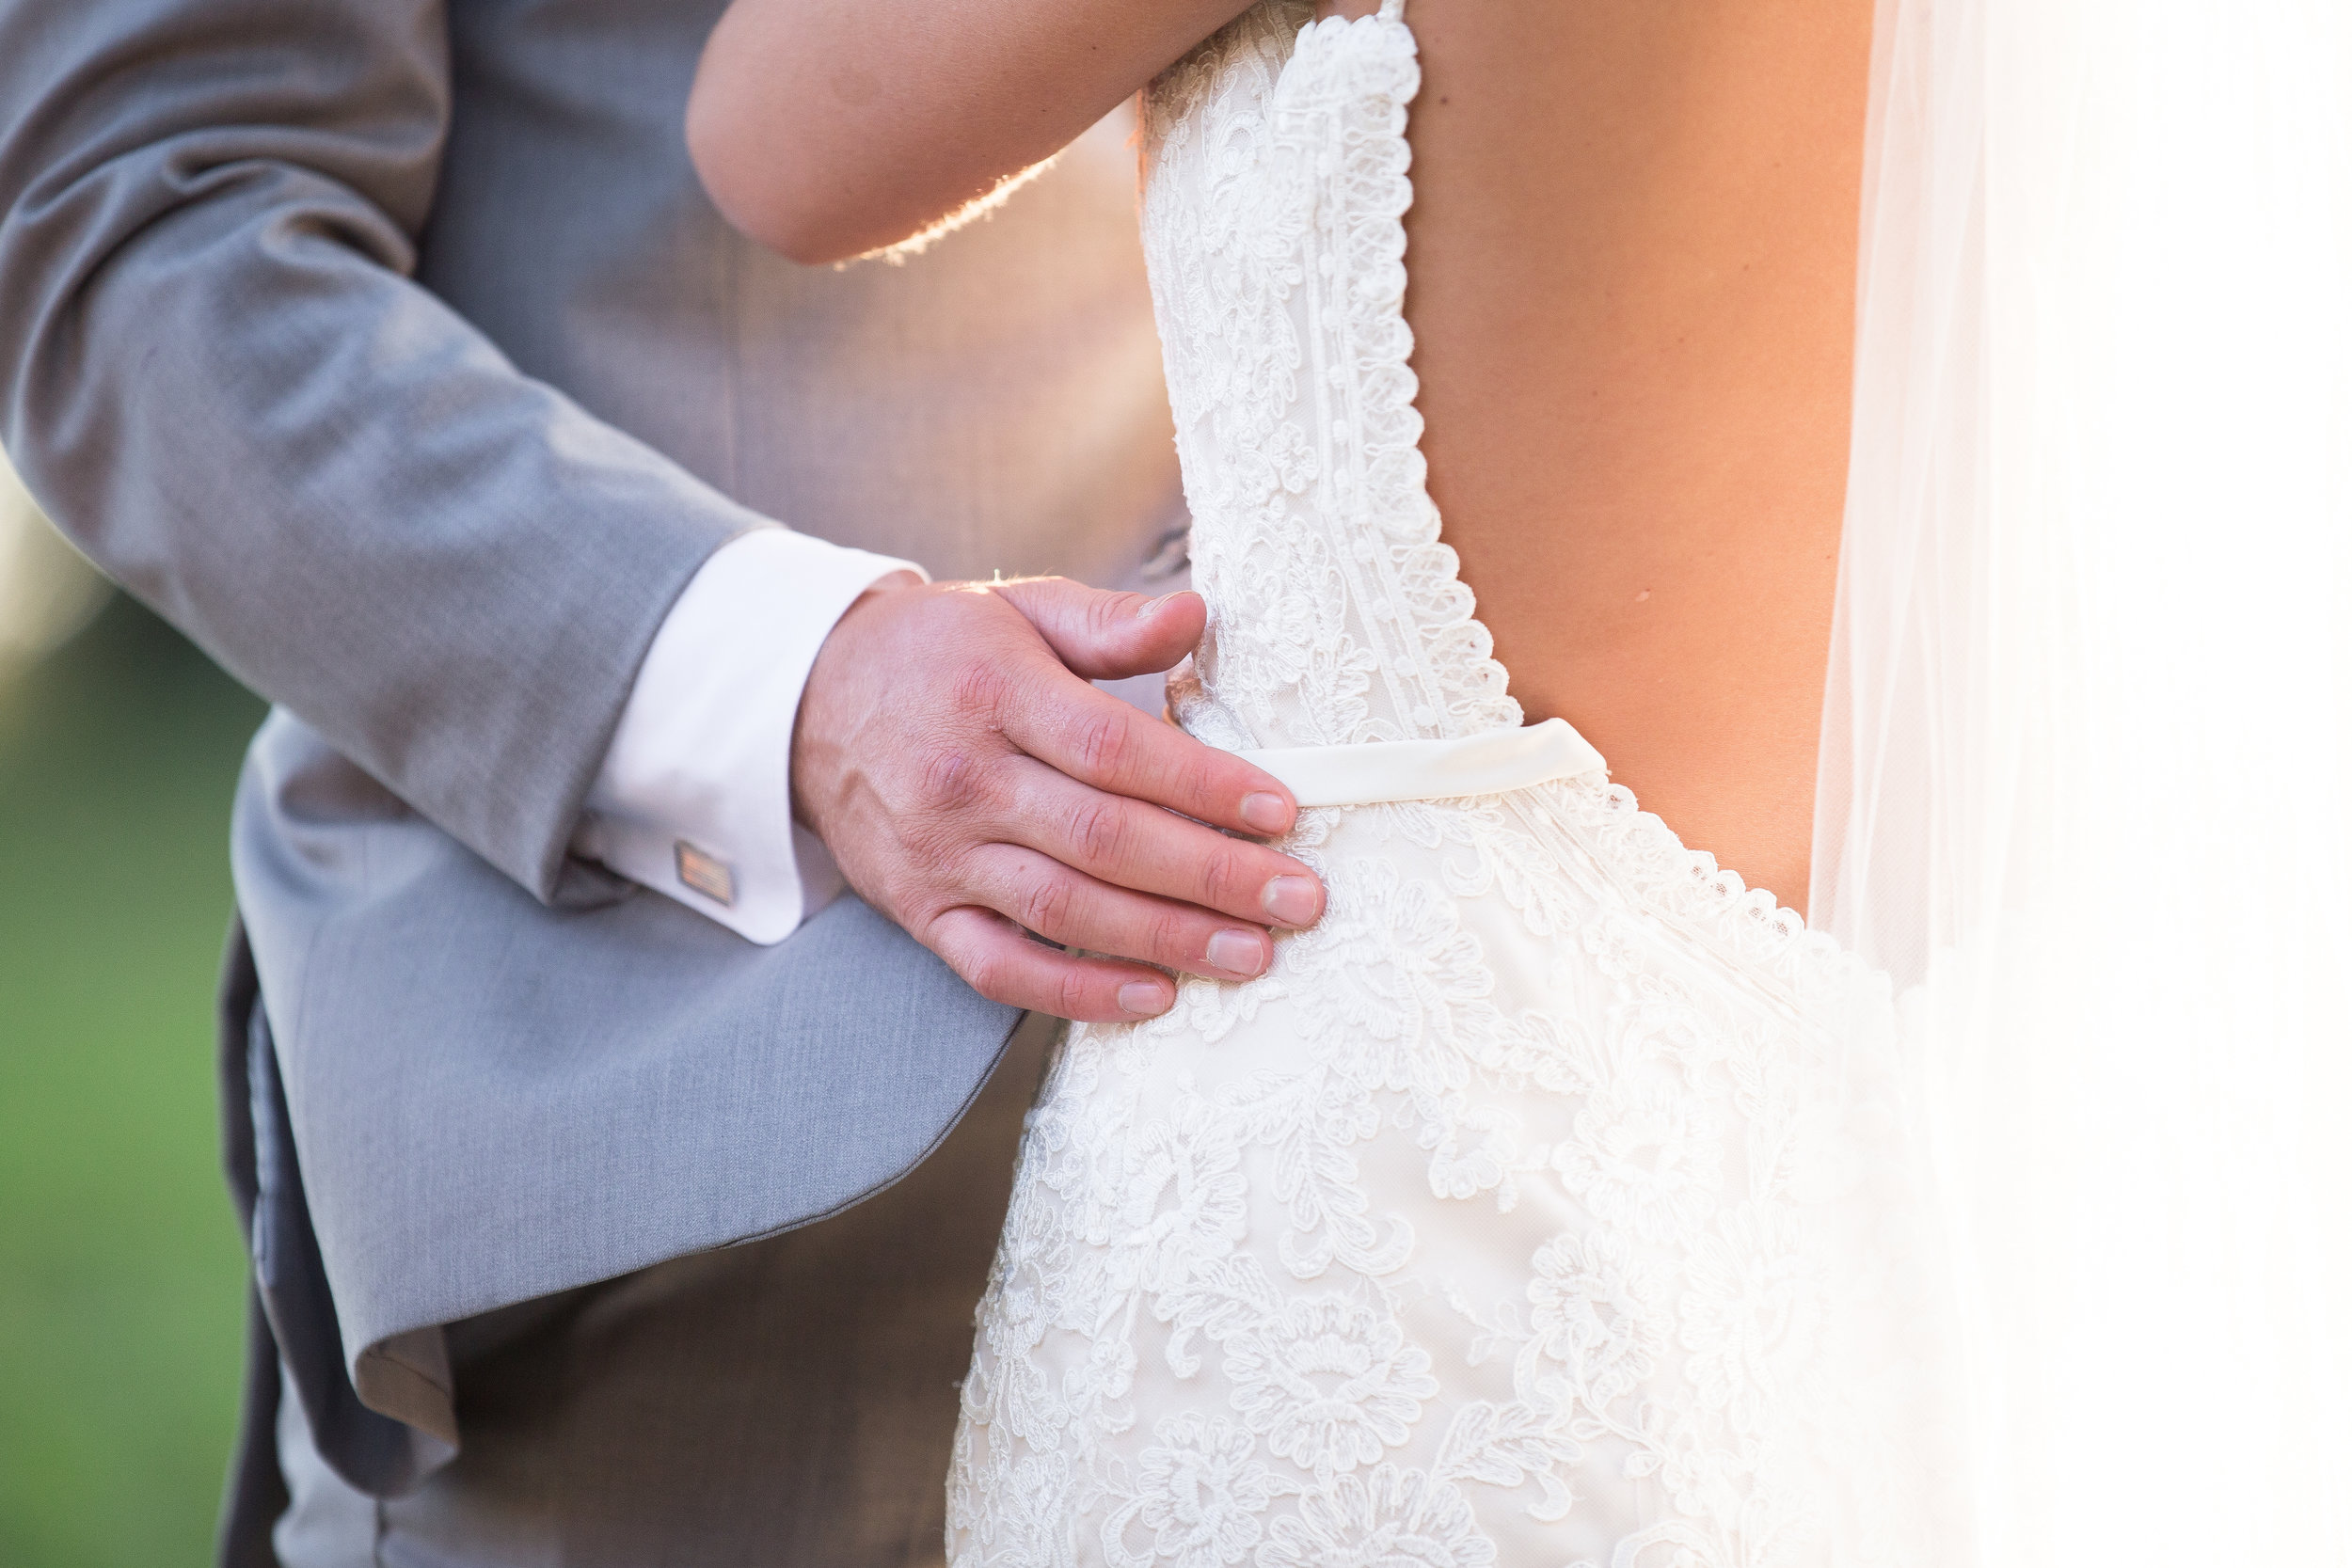 close up of groom's hand on bride's waist